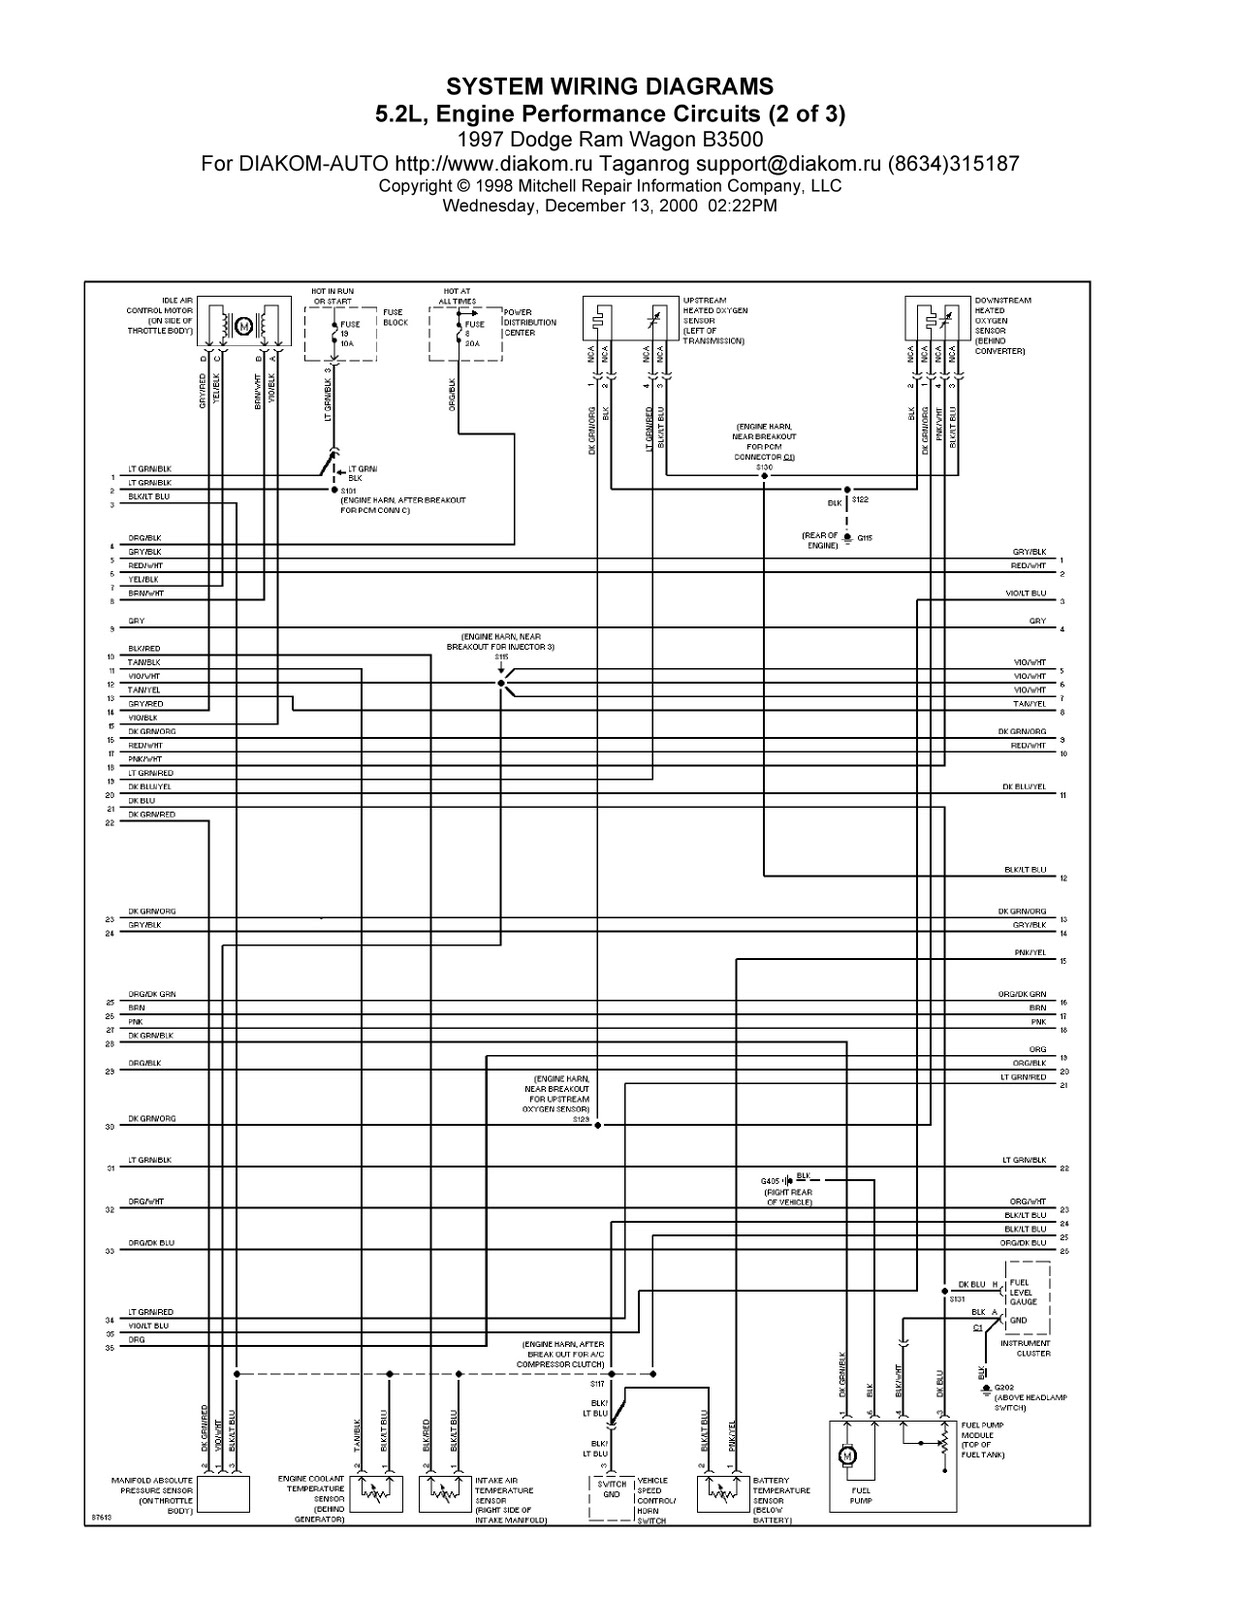 1997 dodge ram wagon b3500 system wiring diagram 5 2l 1997 dodge ram wiring diagram 97 [ 1236 x 1600 Pixel ]